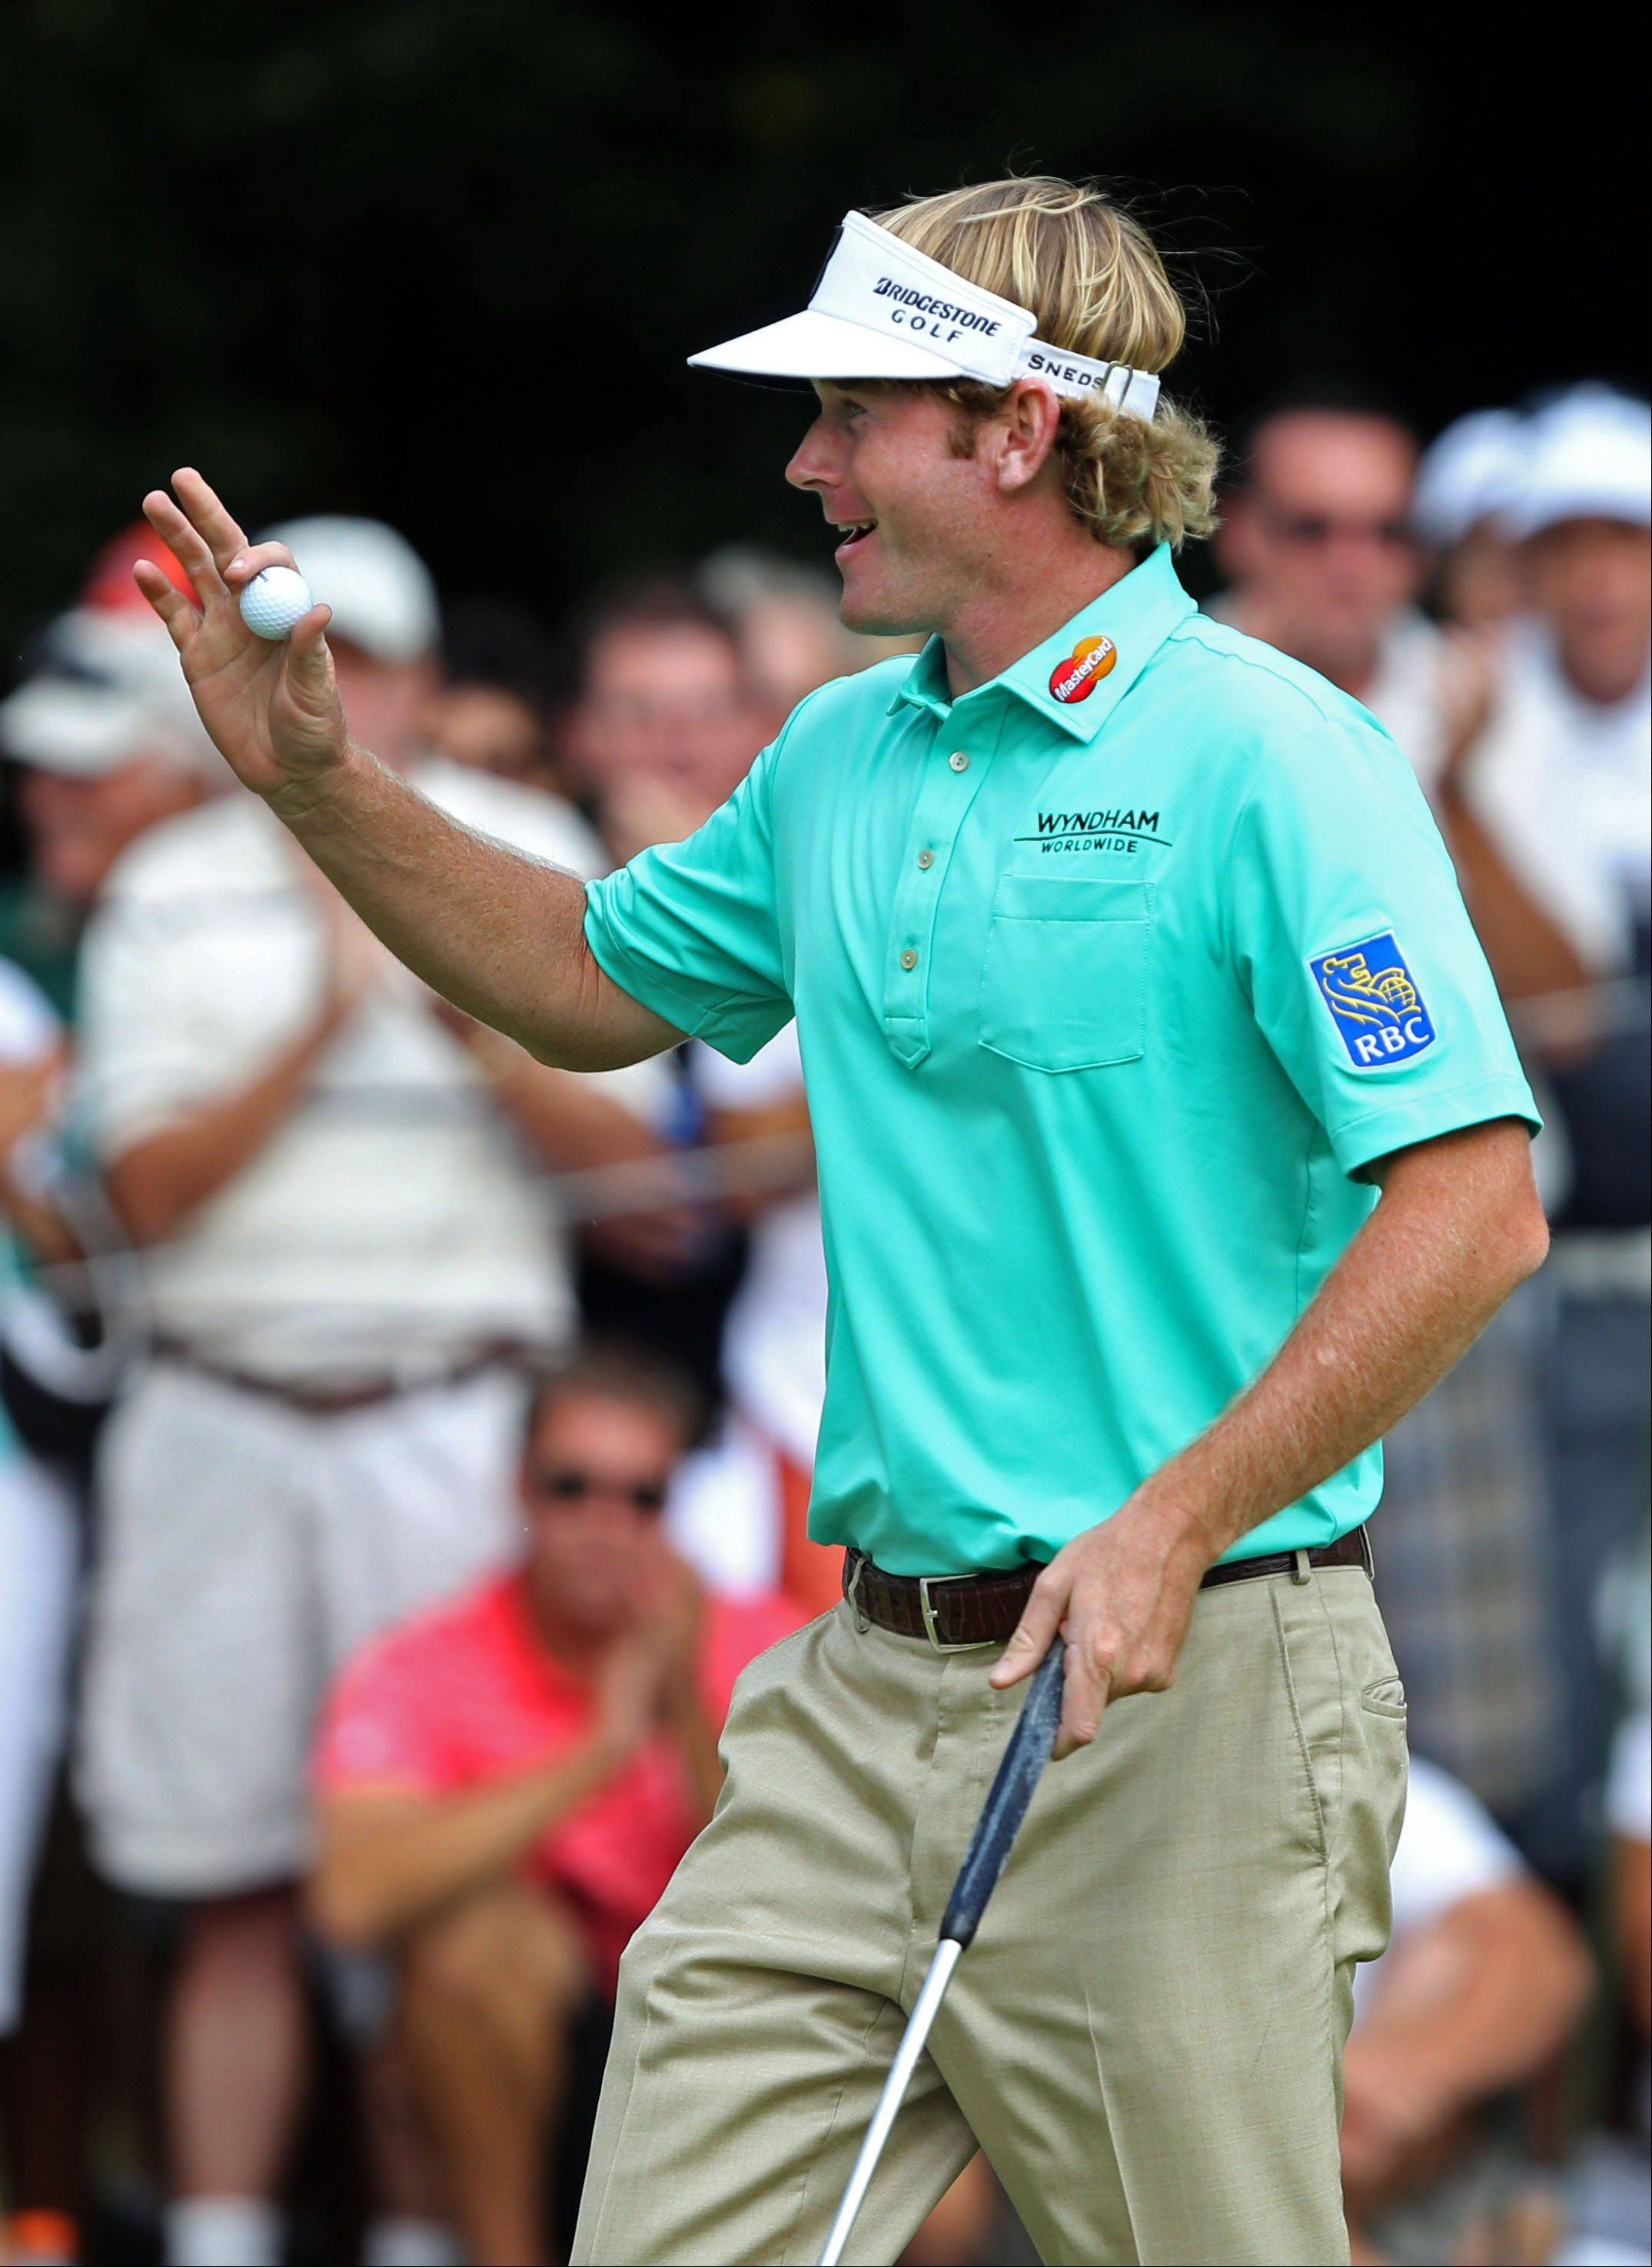 Brandt Snedeker waves after sinking a par putt on the 9th hole.